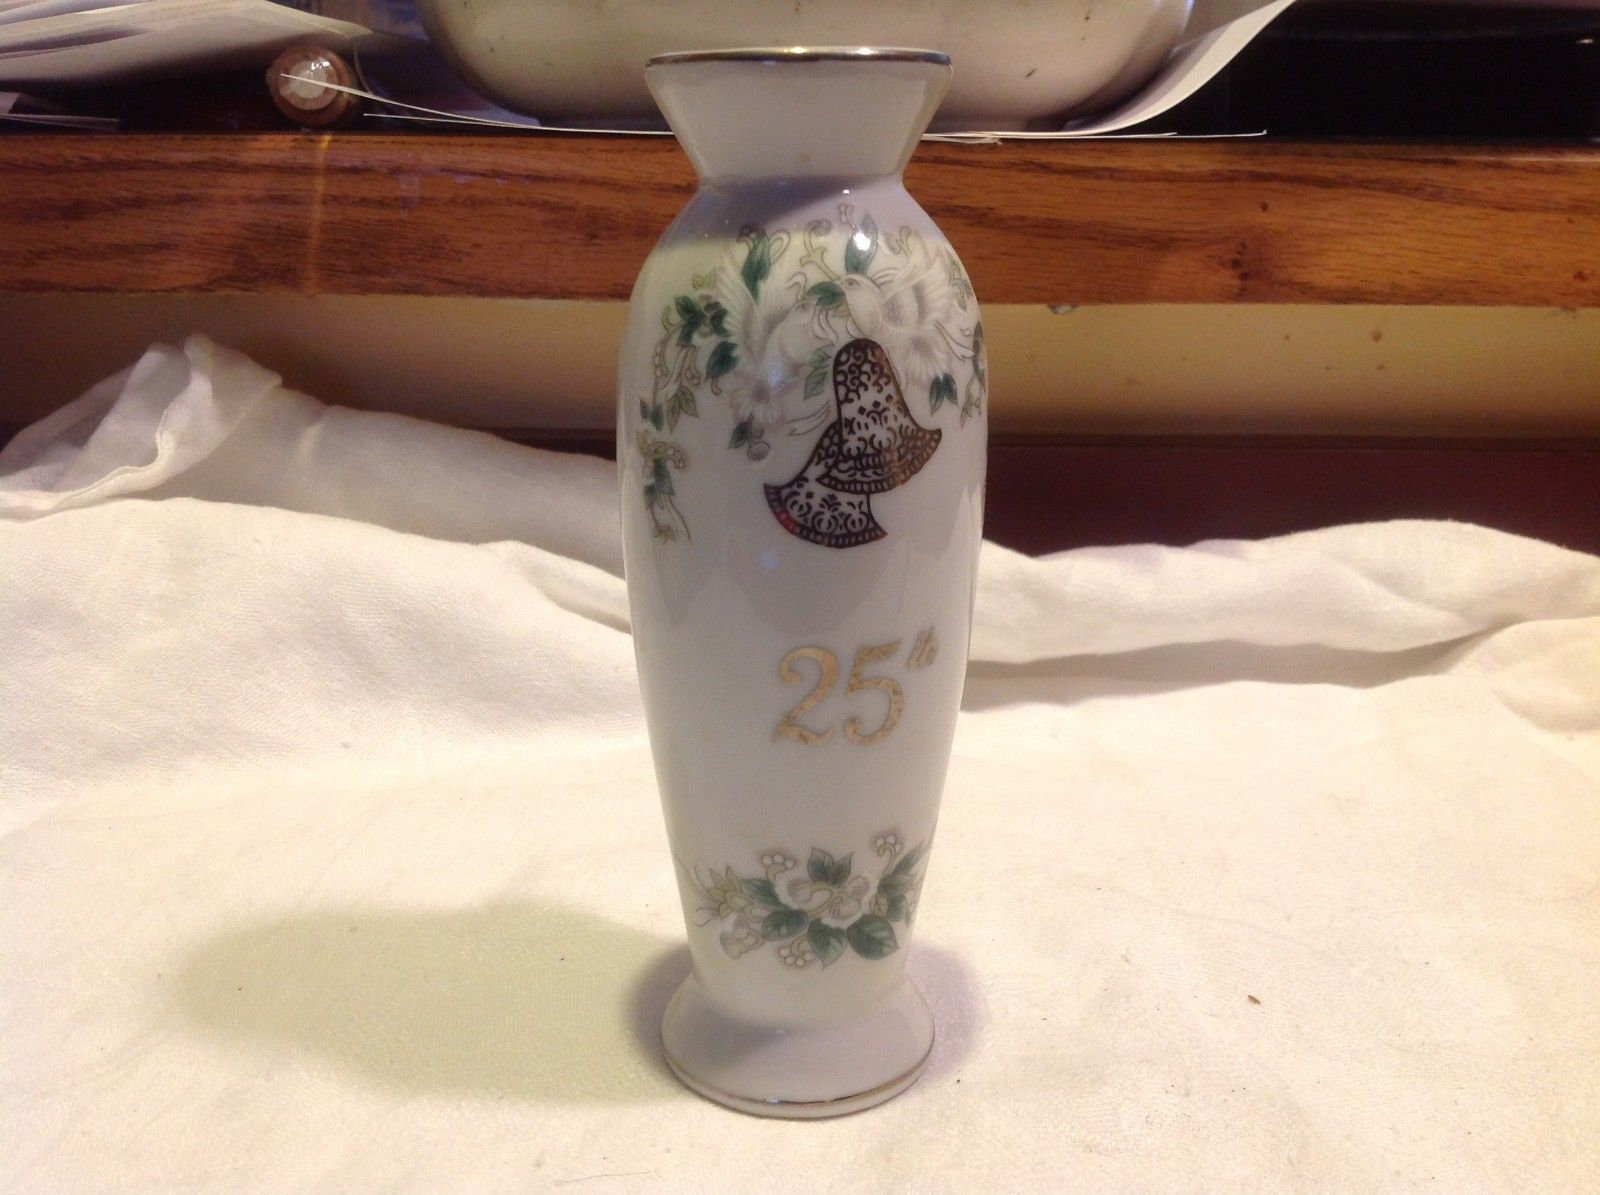 Lefton 25th Silver Anniversary overlay floral ceramic vase